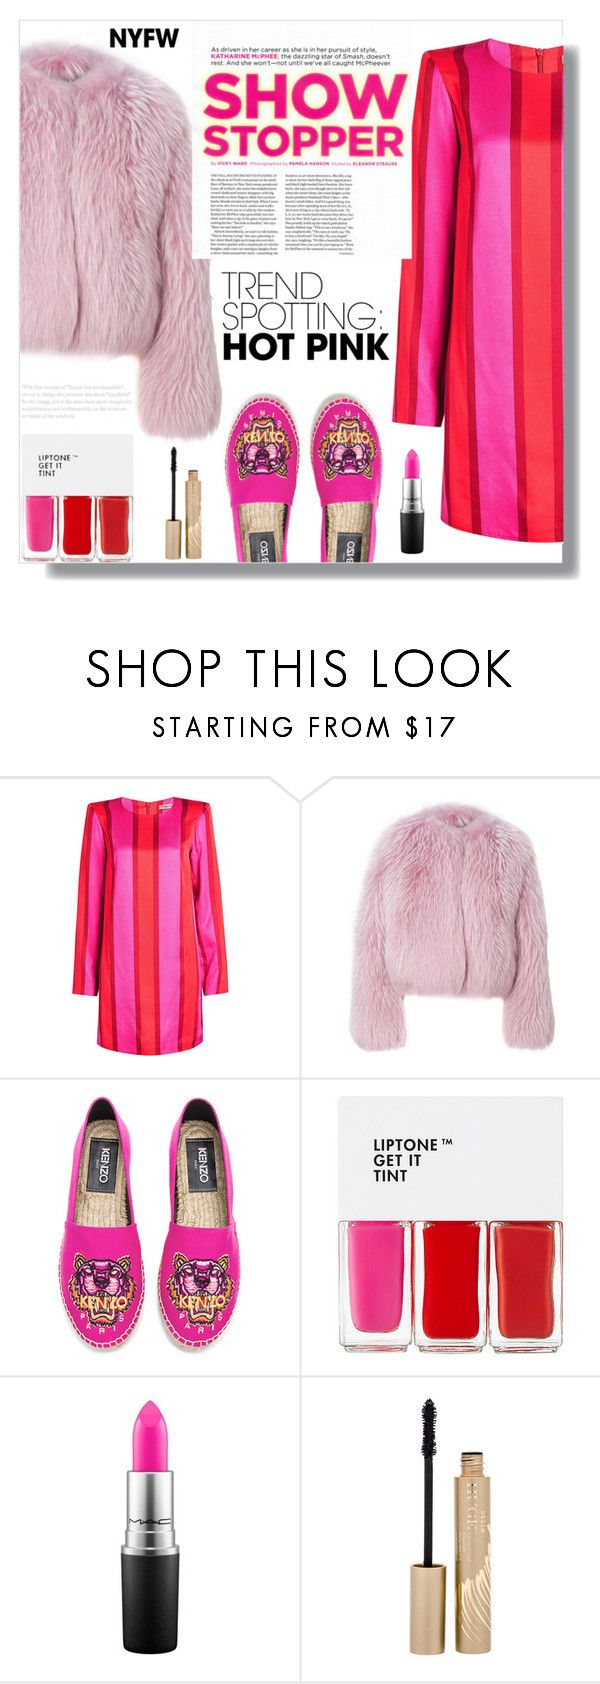 """""""Hot as Pink"""" by luna-jancek ❤ liked on Polyvore featuring Maggie Marilyn, Kenzo, TONYMOLY, MAC Cosmetics, Stila, contestentry and NYFWHotPink"""